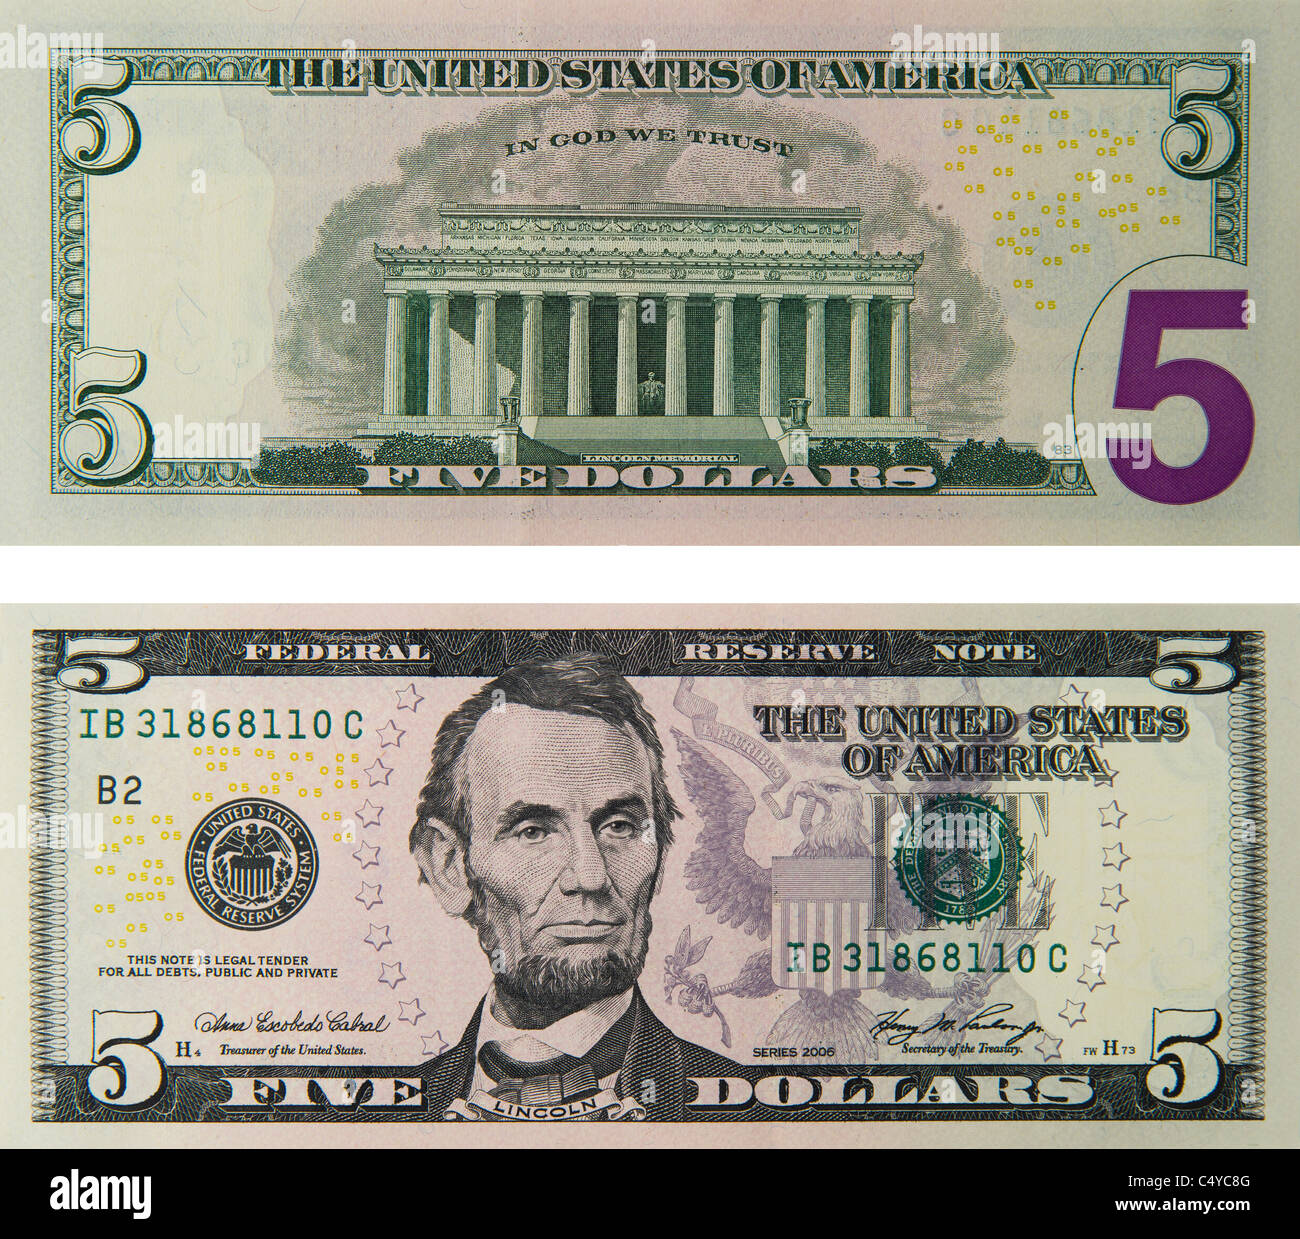 5 cinq dollars note note de la loi. Photo Stock